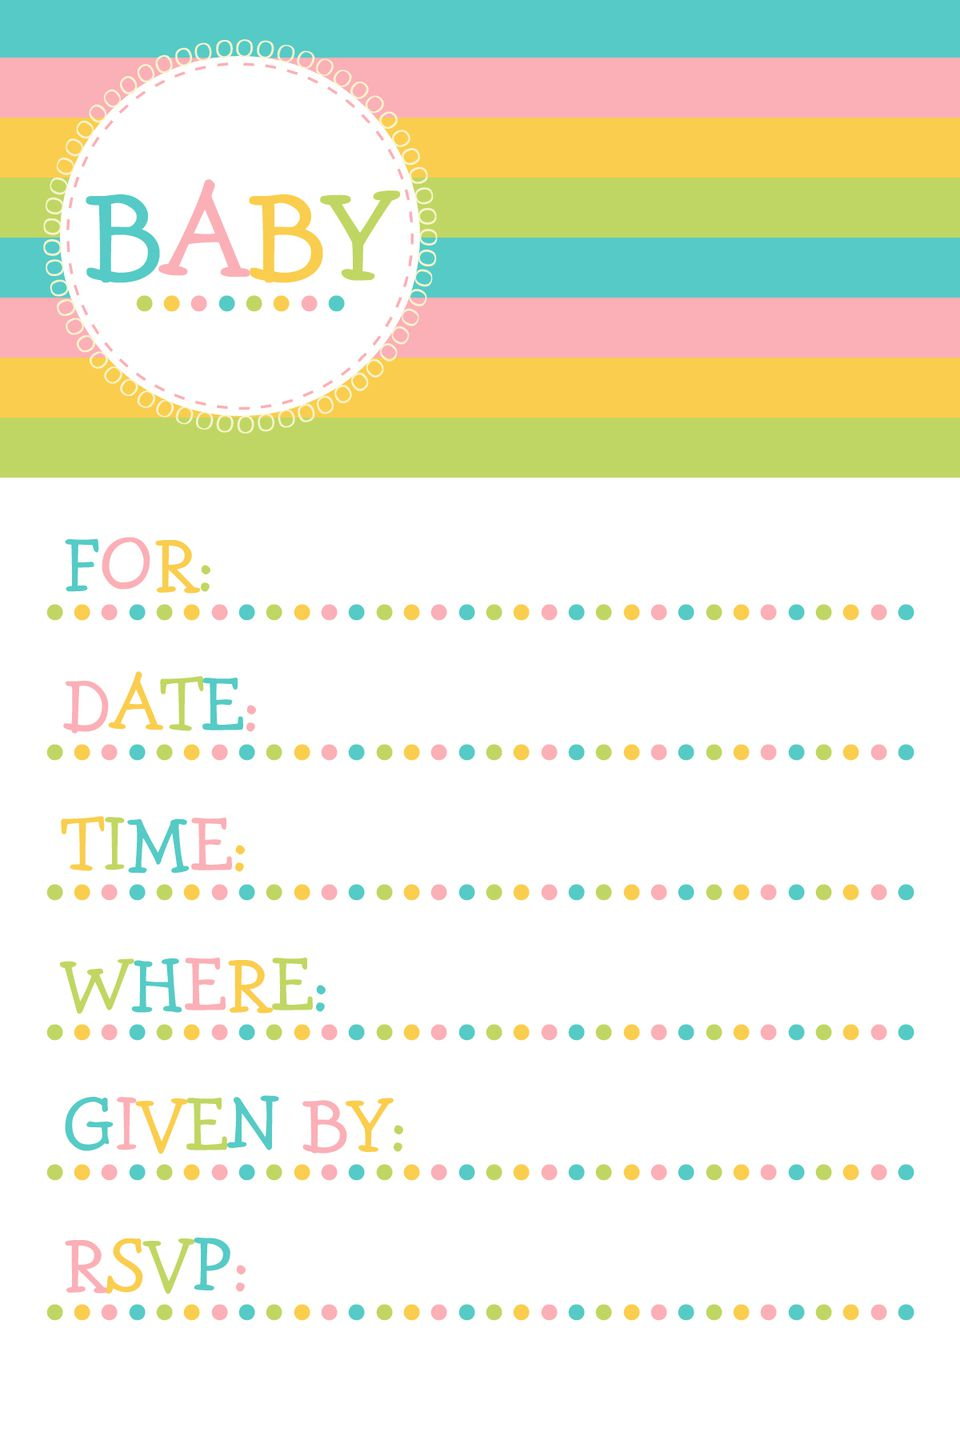 Medium Size of Baby Shower:sturdy Baby Shower Invitation Template Image Concepts Baby Shower Invitation Template Girl Baby Shower Baby Shower Registry Baby Shower Host Baby Shower Gift Ideas